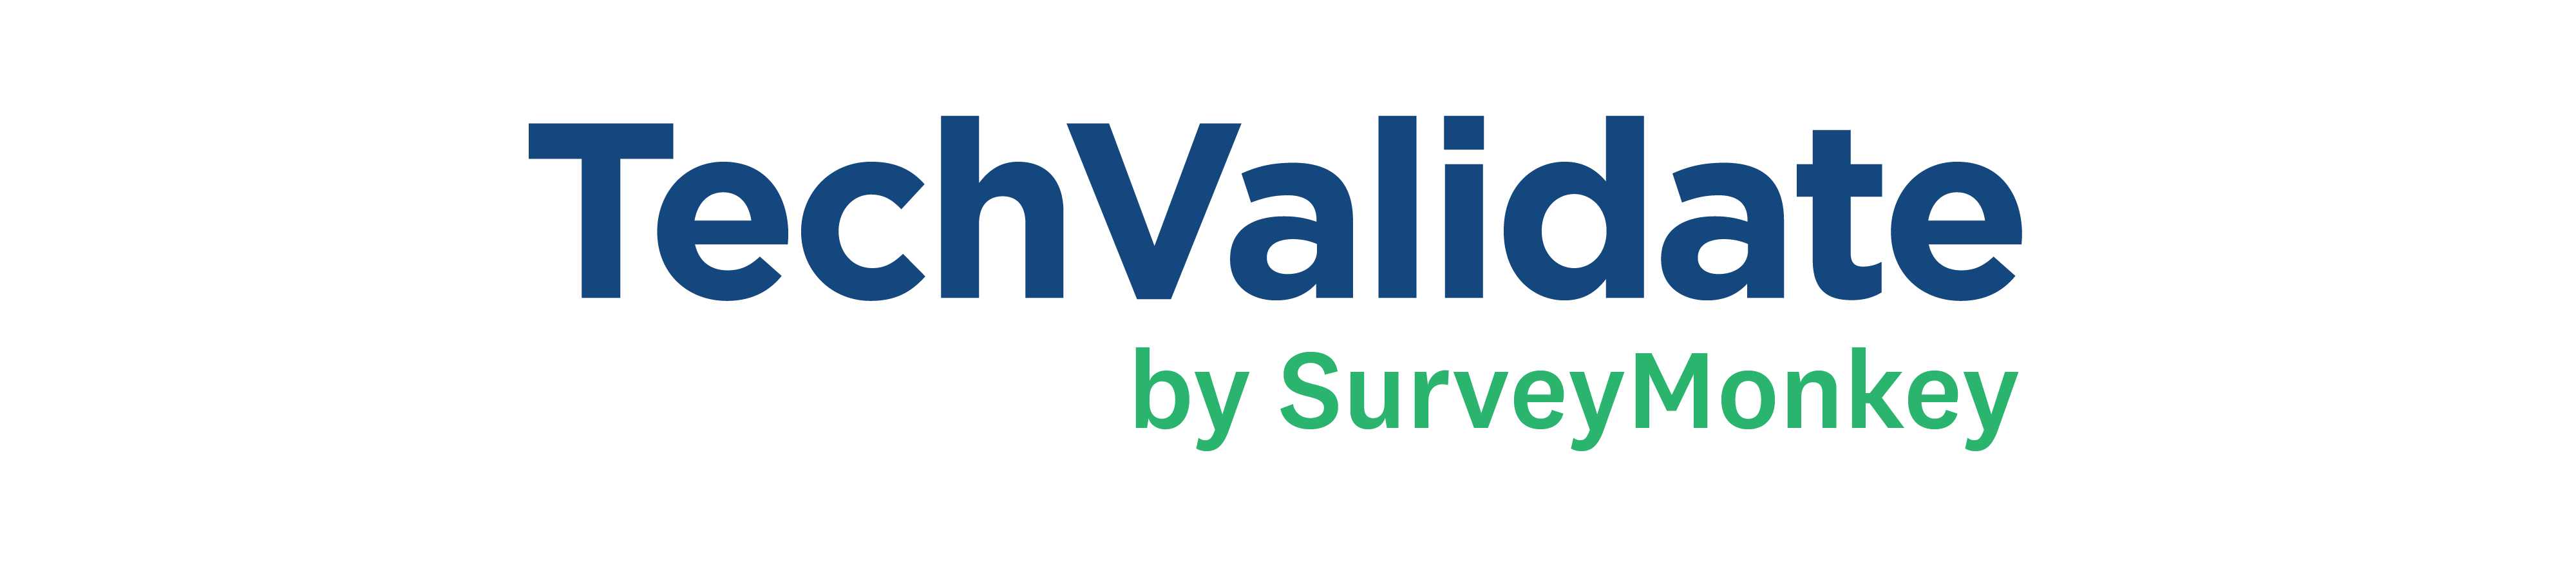 TechValidate - Content Creation Software : SaaSworthy.com